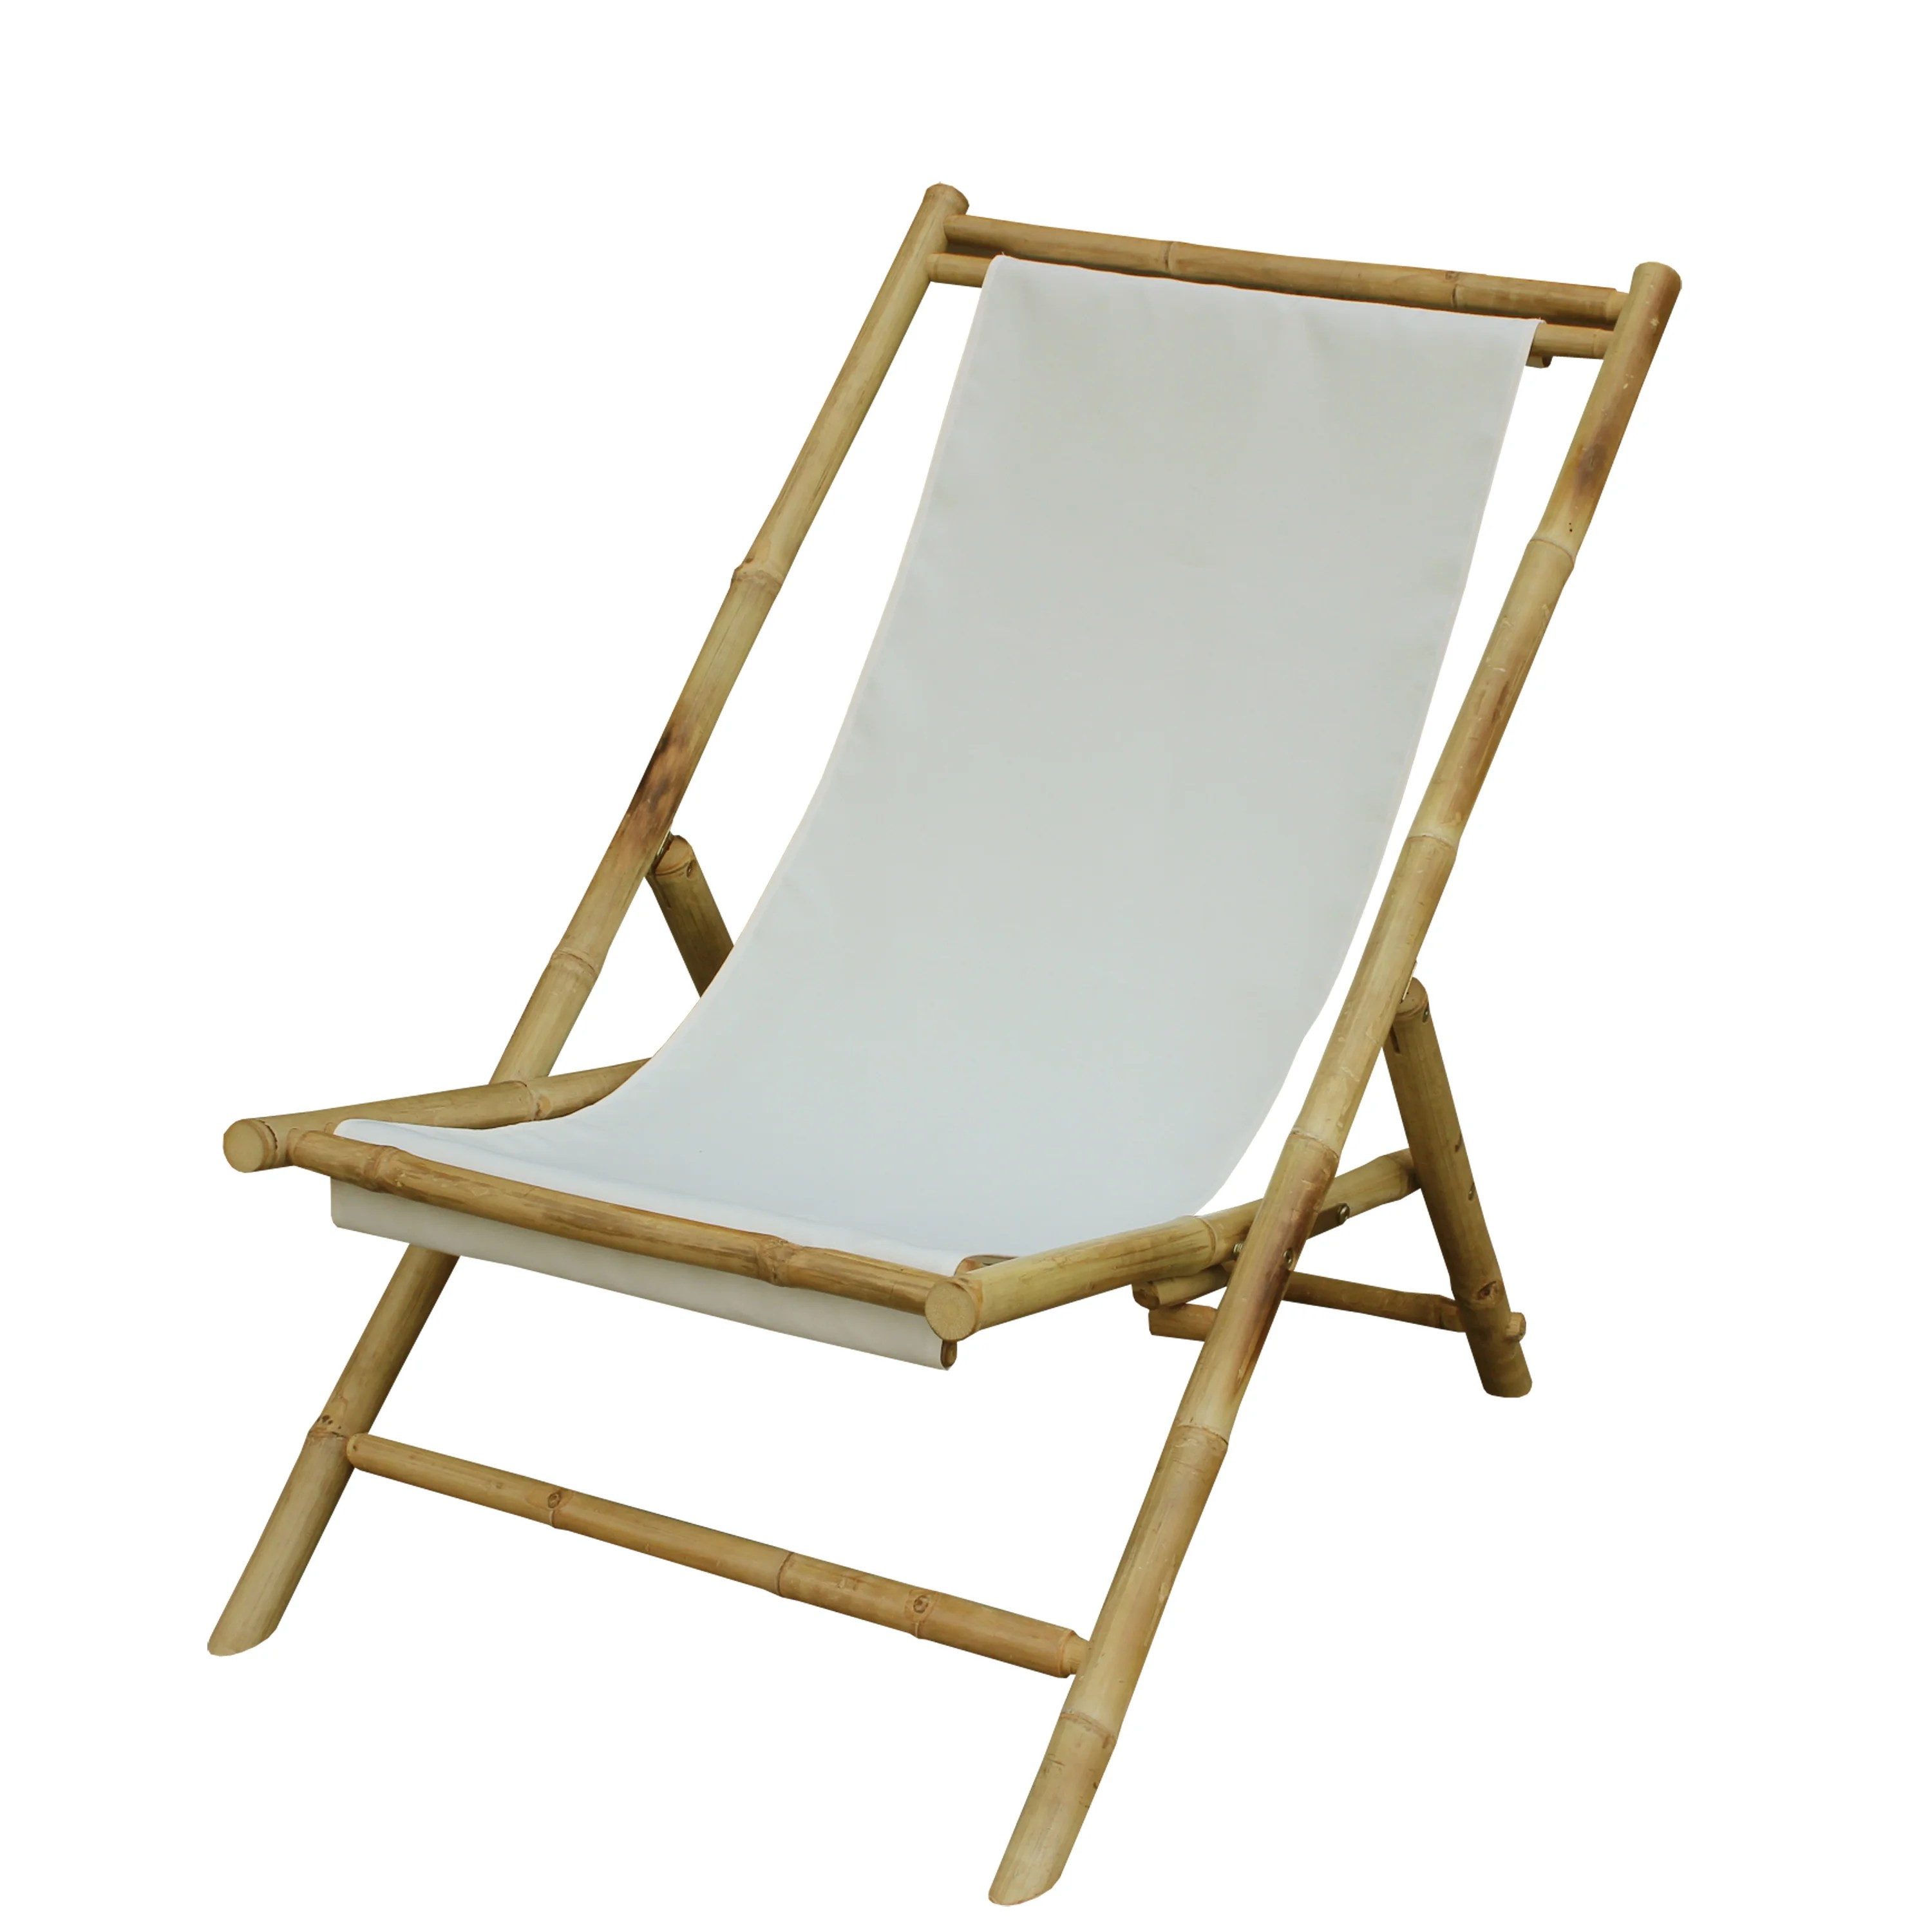 Foldable Patio Chairs Zew Hand Crafted Foldable Bamboo Sling Patio Chair